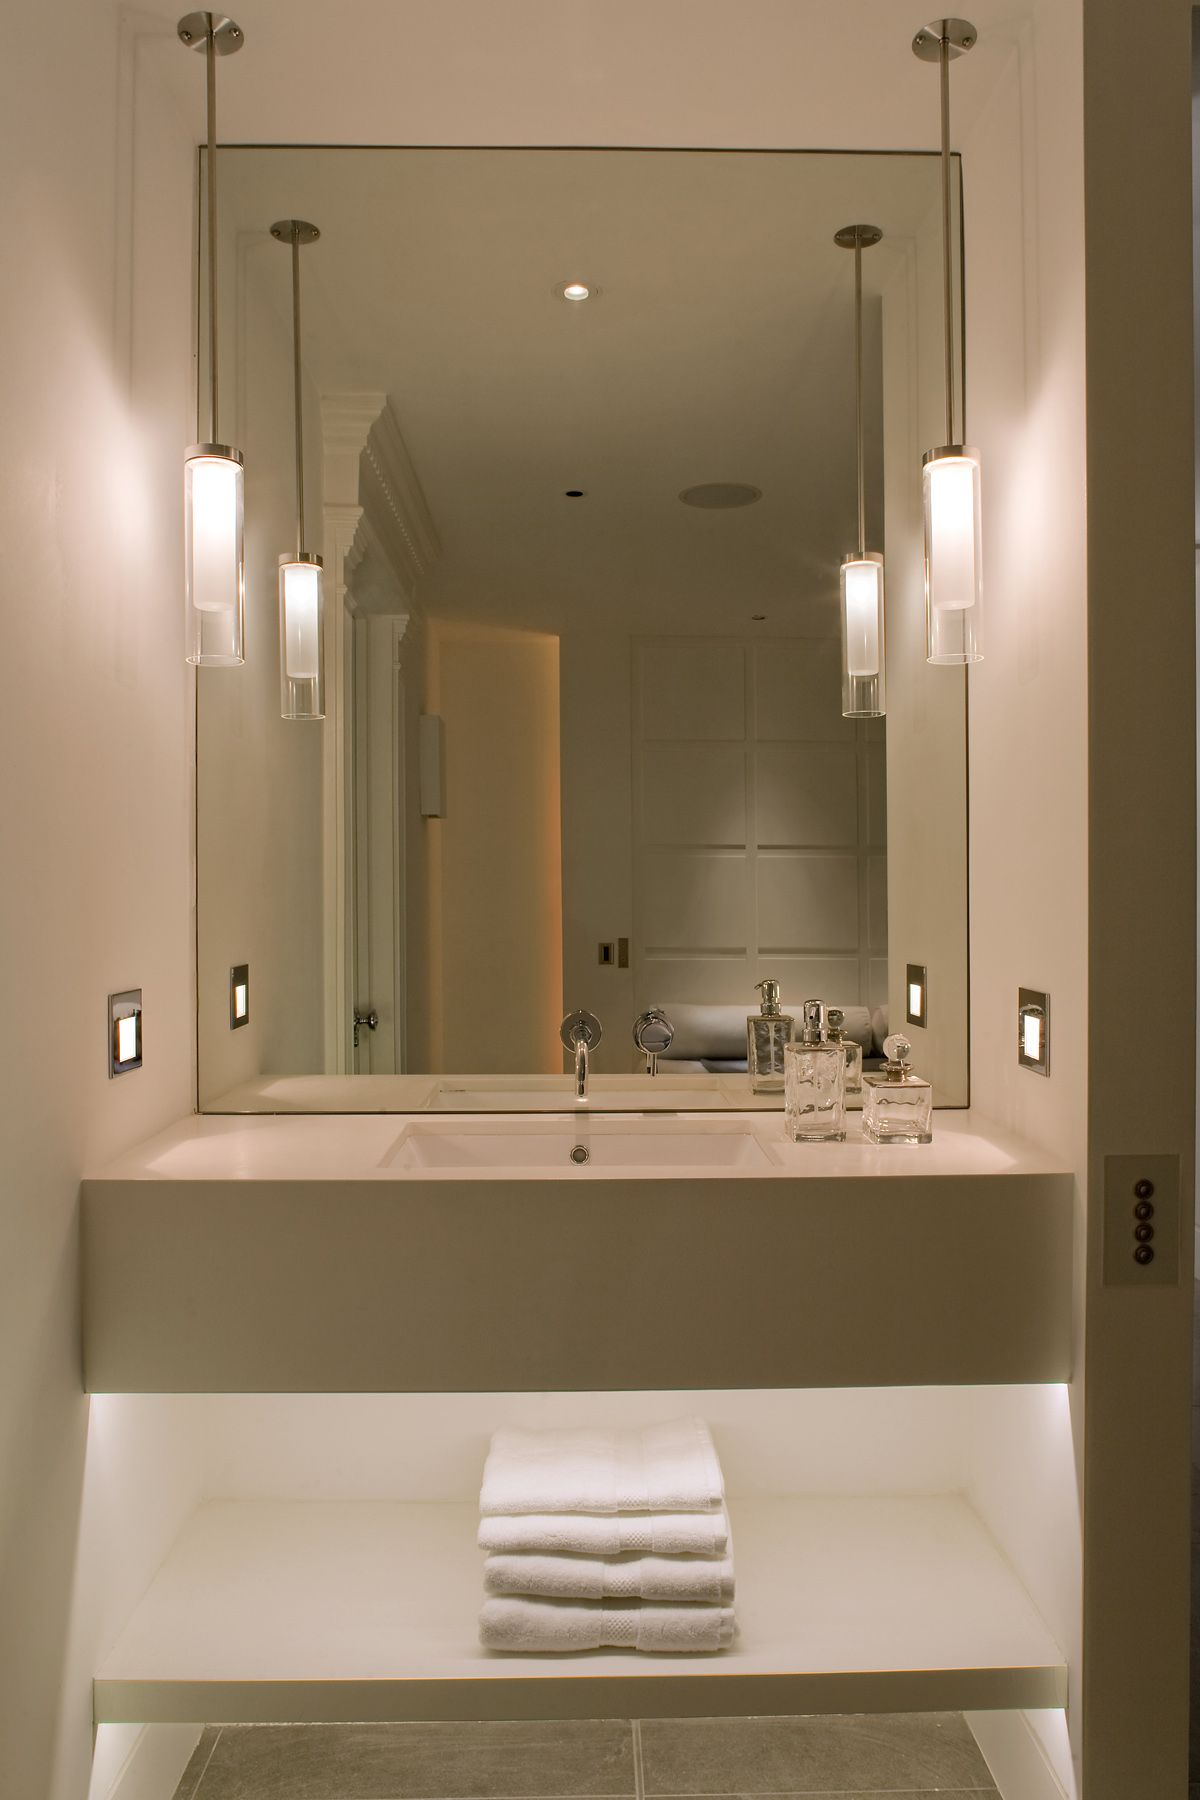 Lighting For Bathrooms Bathroom Lighting Design By John Cullen Lighting ВАННАЯ КОМНАТА